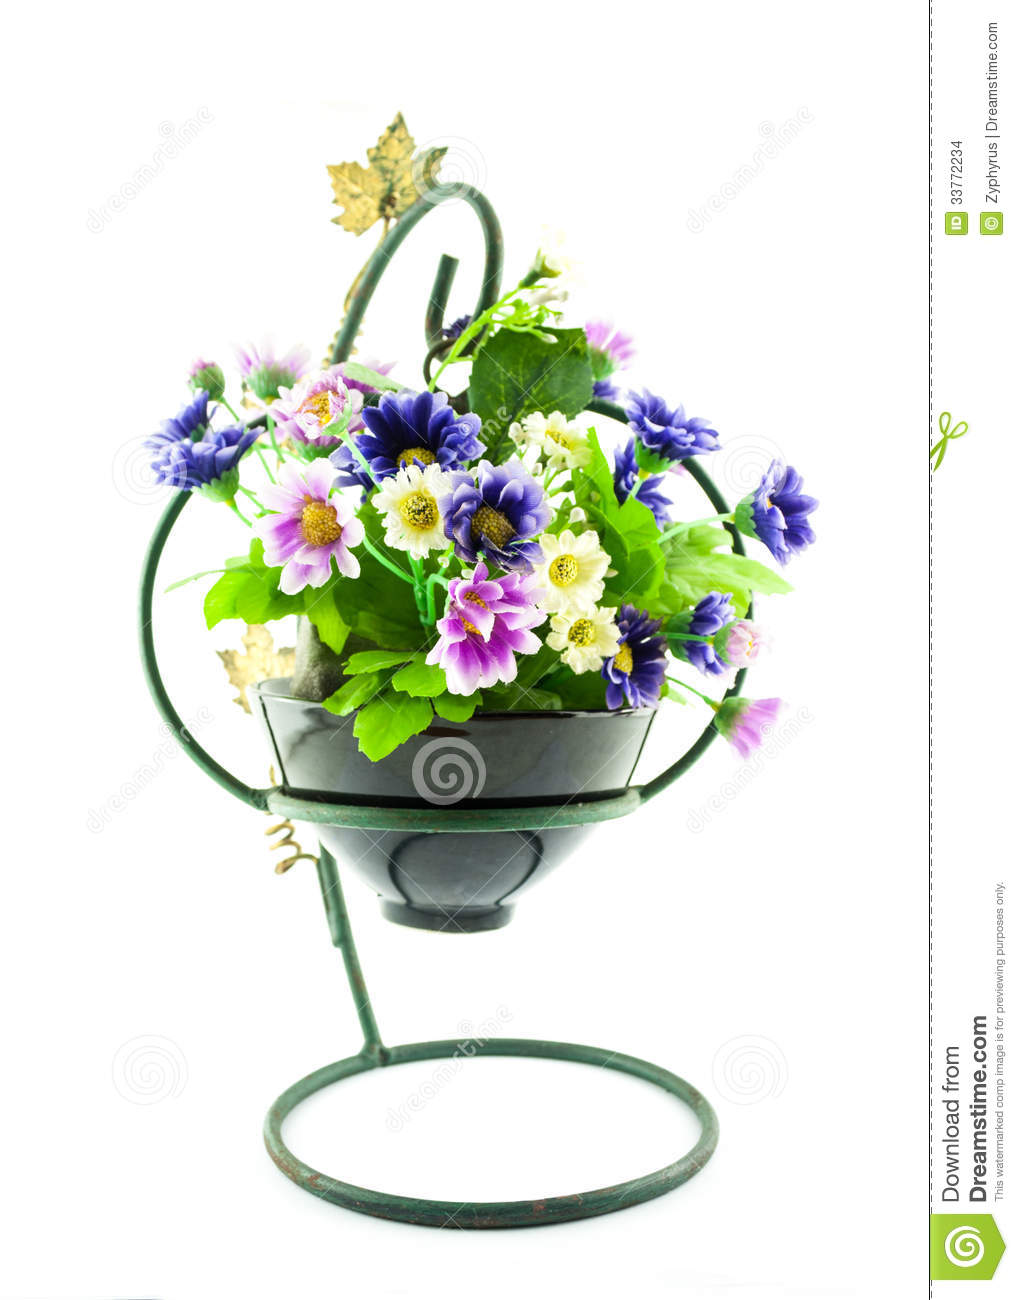 254 & Decorative The Artificial Flowers In Pot Stock Photo - Image ...